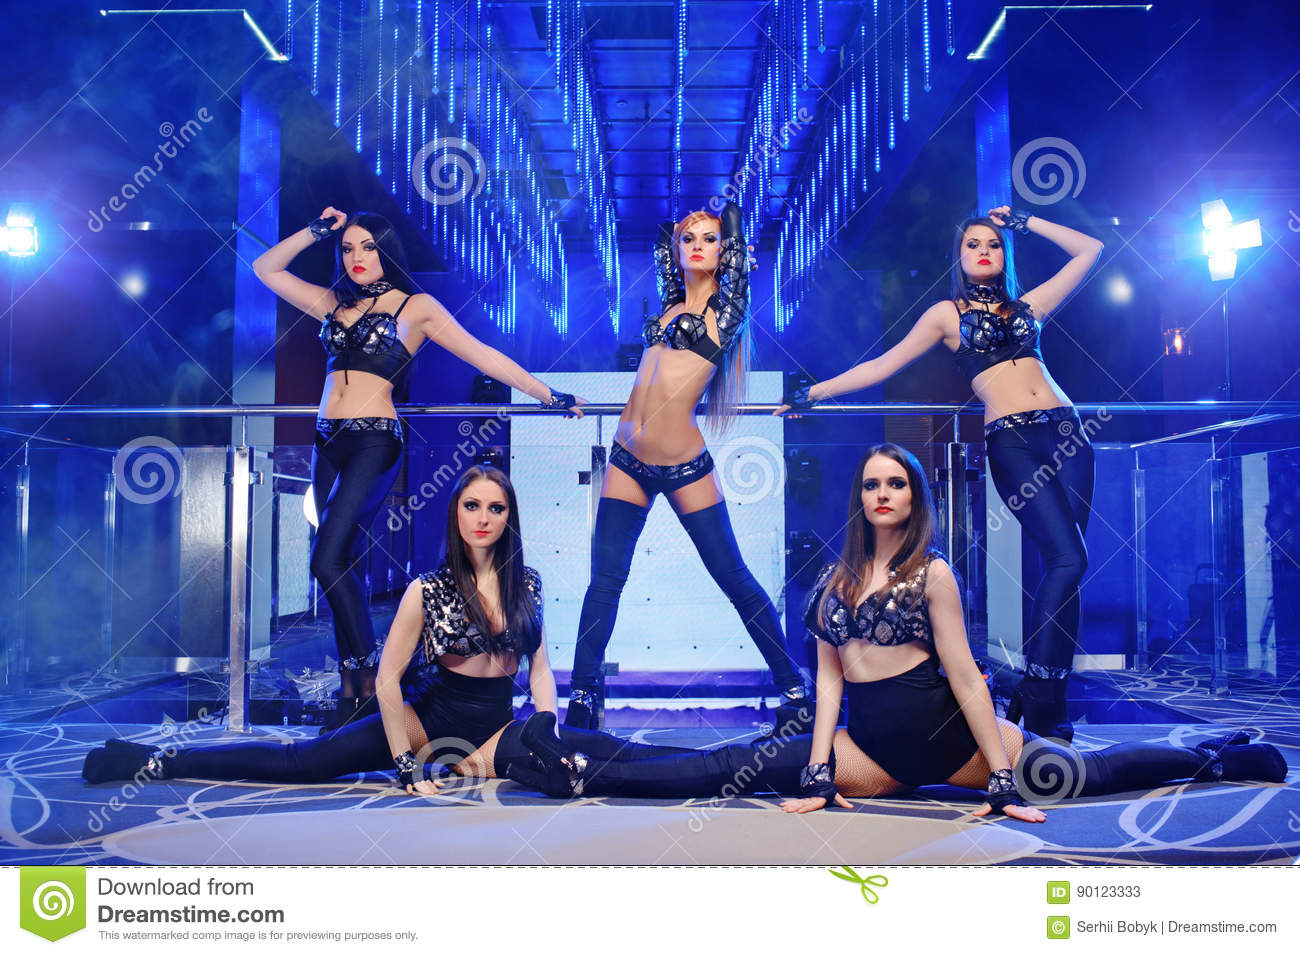 Group of go-go dancers wearing black outfits